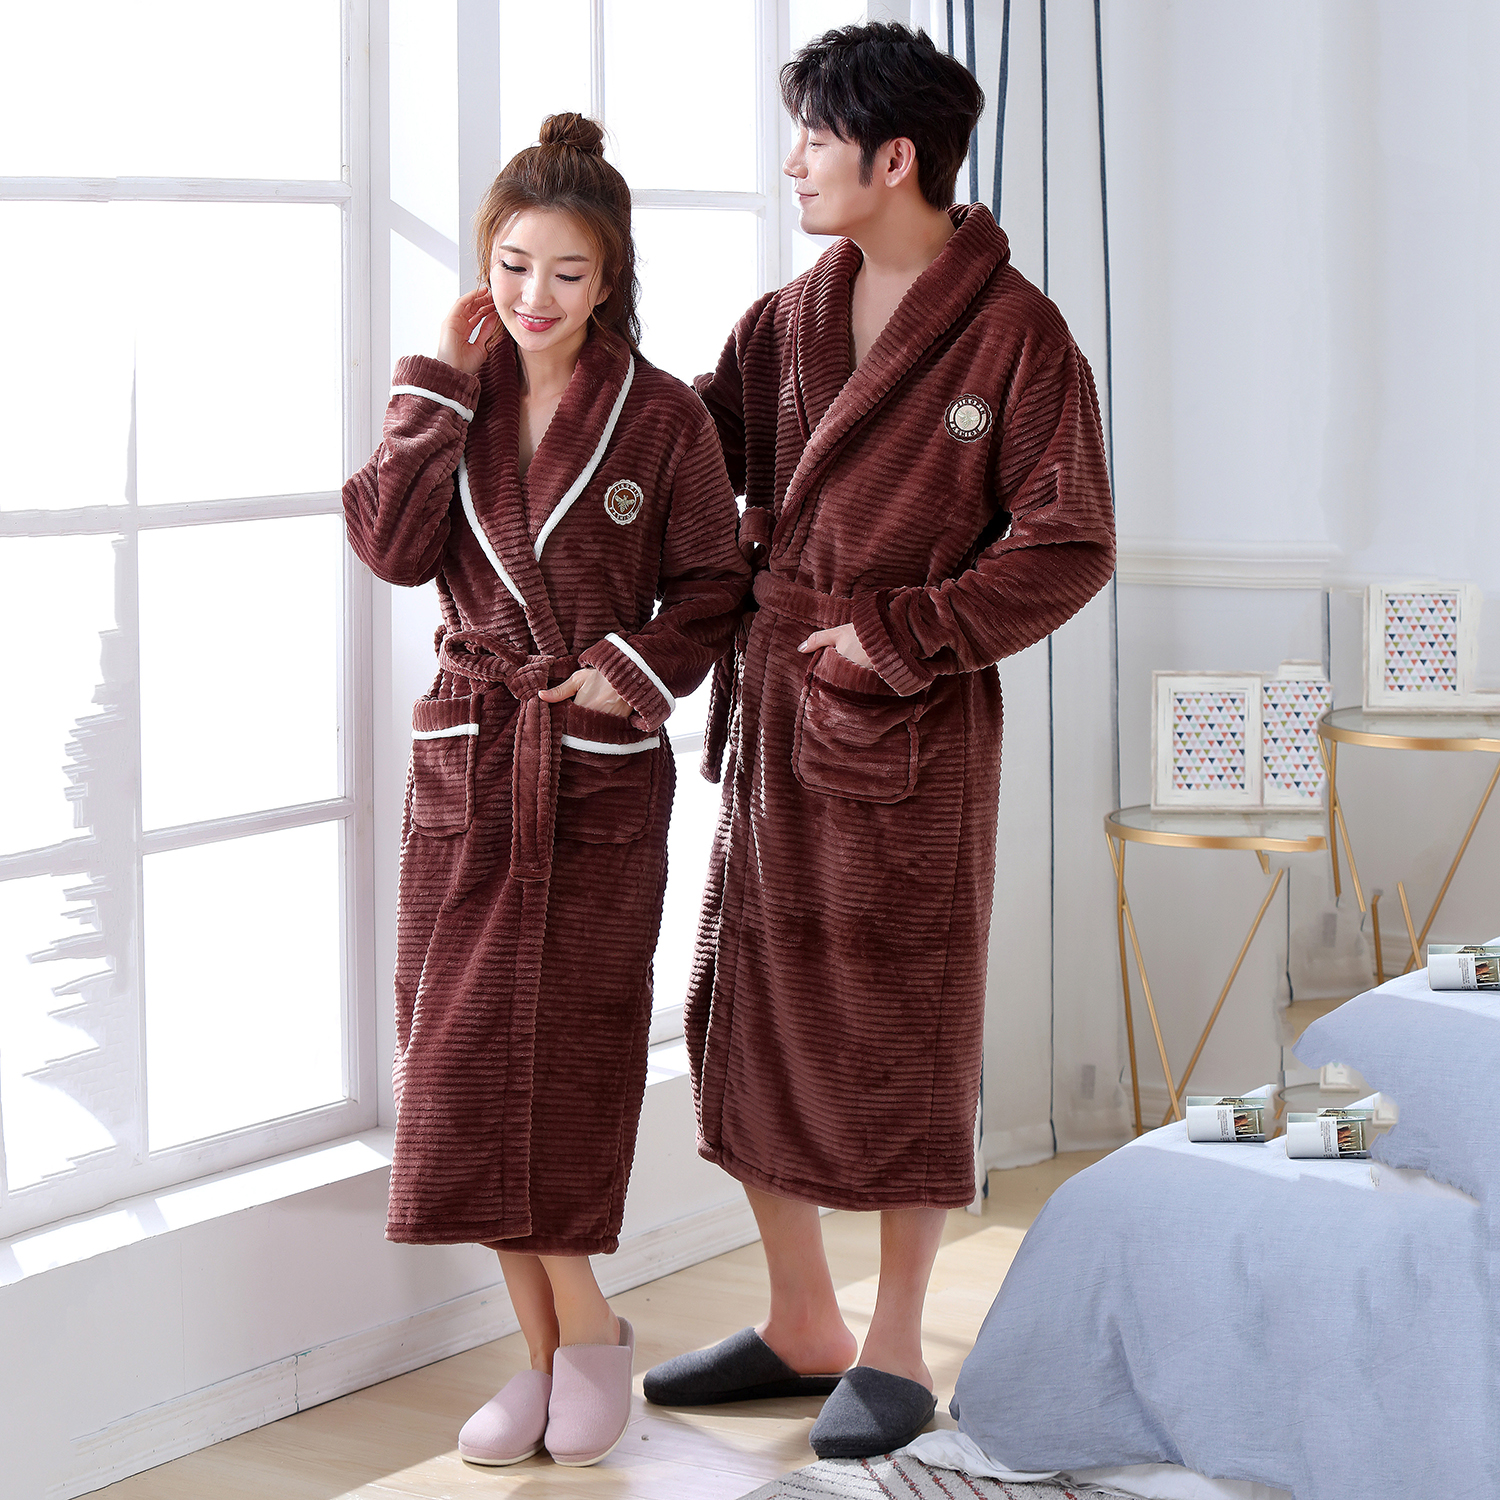 Brown Couple Sleepwear Robe Gown Solid Colour Home Dressing Gown Sleepwear Nightgown Full Sleeve Intimate Lingerie Plus Size 3XL